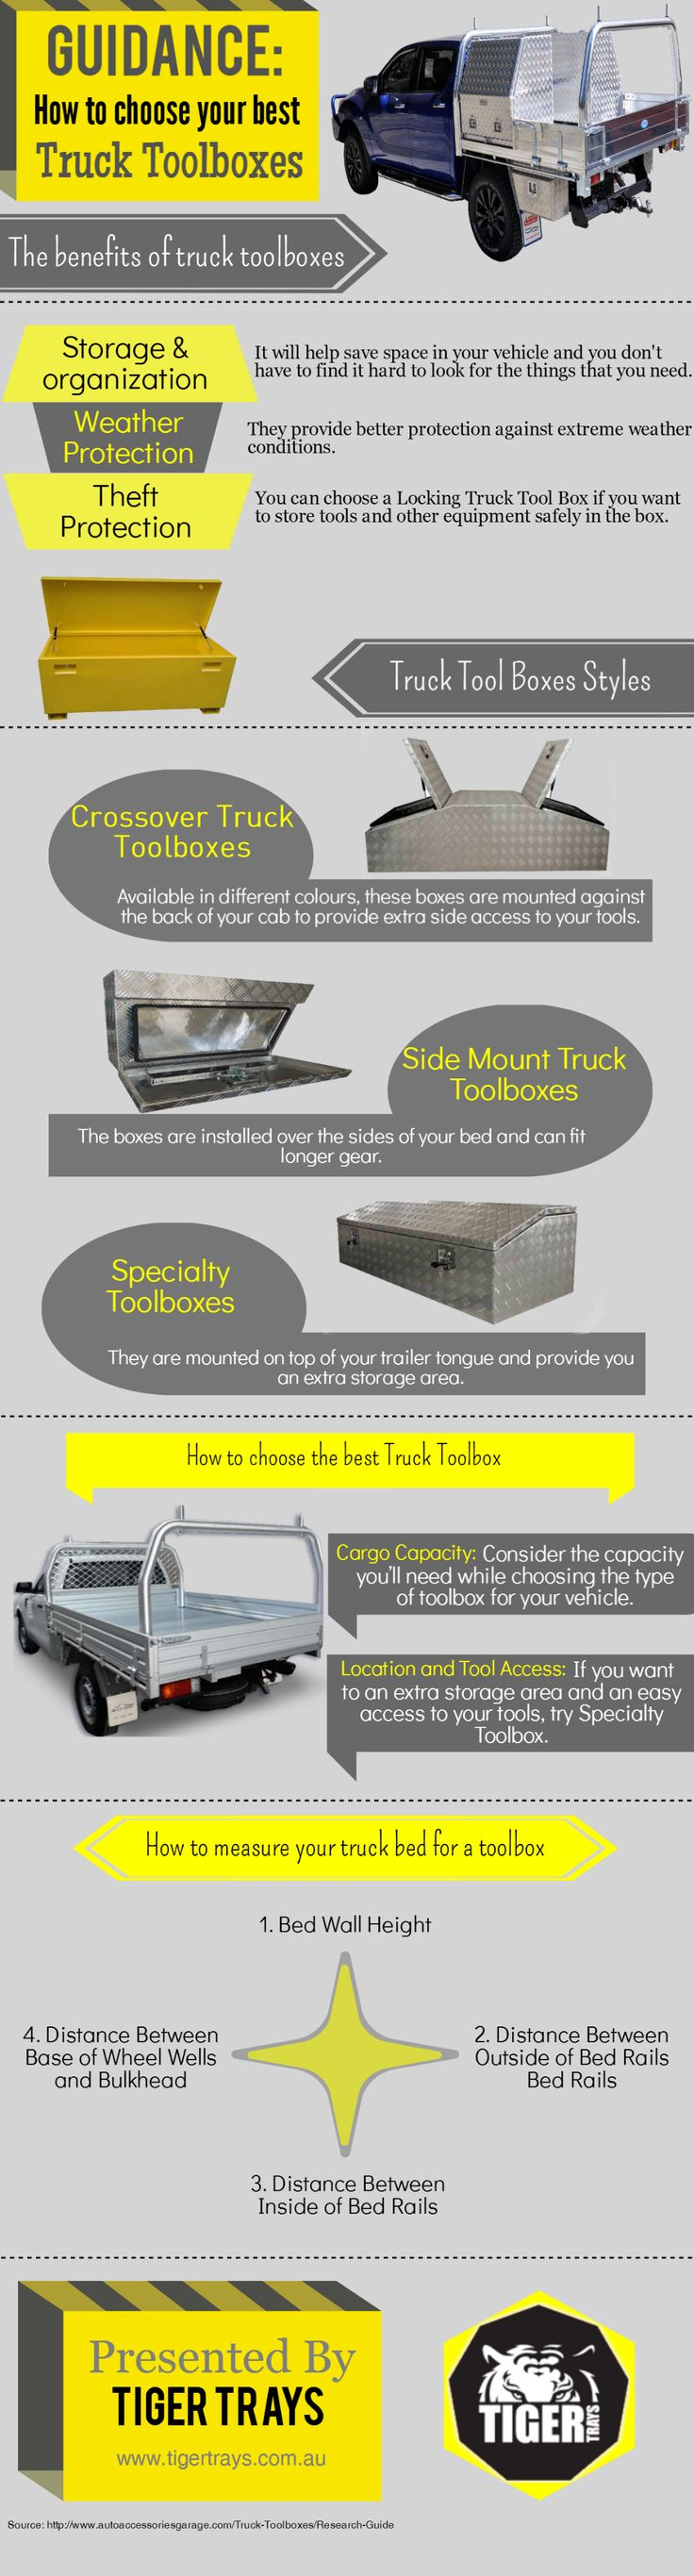 Tool boxes are one of the necessary accessories for your ute. It will provide a touch of refinement to your vehicle and help in the orderly arrangement of your tools and equipment. We have created this infographic for you to learn about the usage, availability and advantages of truck Toolboxes.